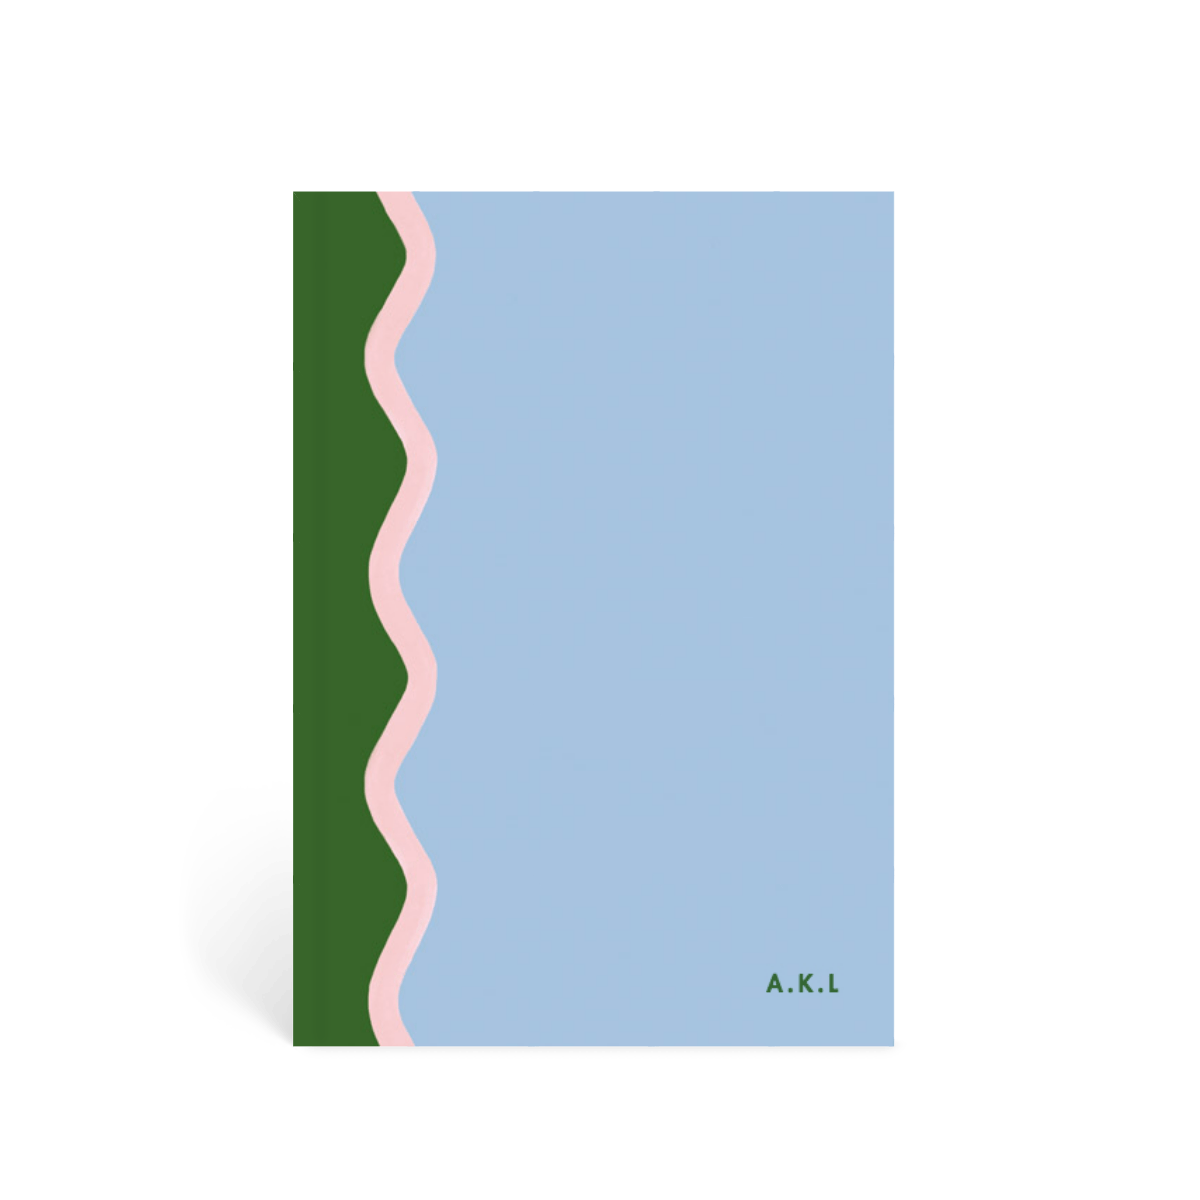 Https%3a%2f%2fwww.papier.com%2fproduct image%2f75329%2f25%2fscallop spine 17653 front 1585308045.png?ixlib=rb 1.1